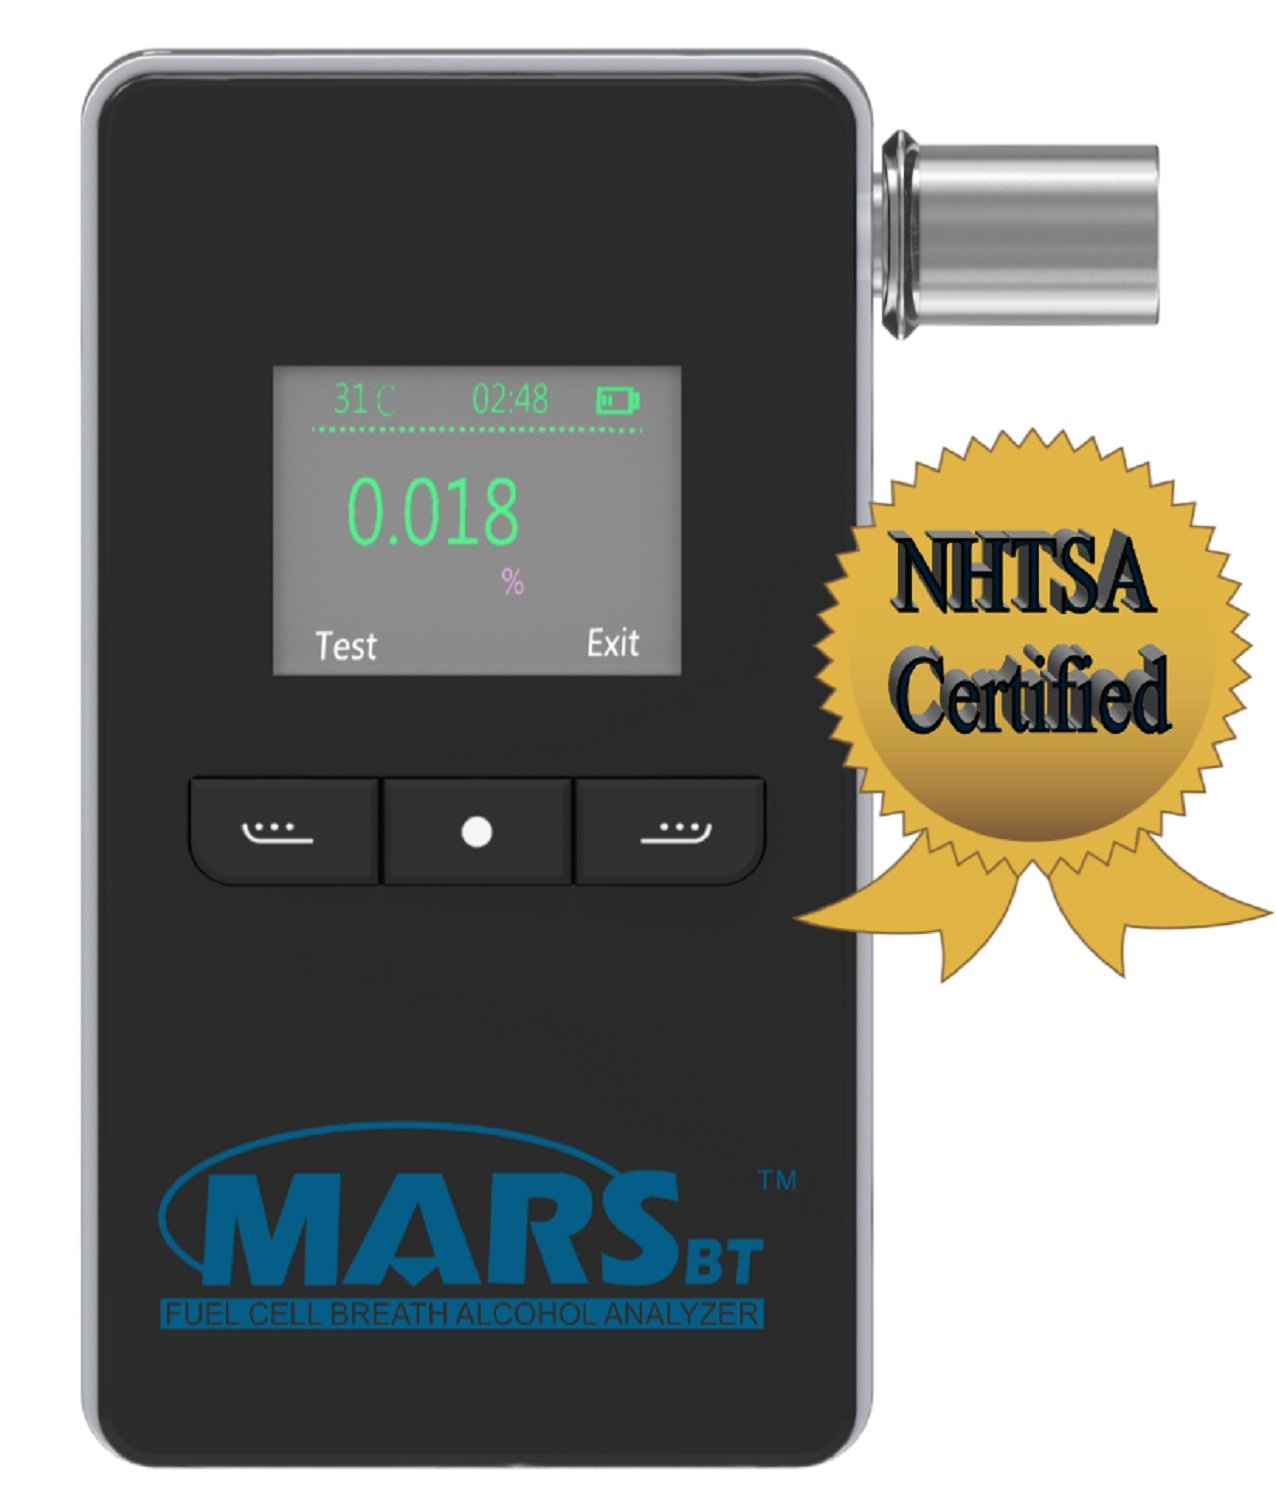 Mars BT Portable Alcohol Breath Tester w/Bluetooth- Professional Grade- Accurately Measures Breath Alcohol Content - Personal Breath Alcohol Tester Displays Accurate BAC Results in Seconds by PAS Systems International